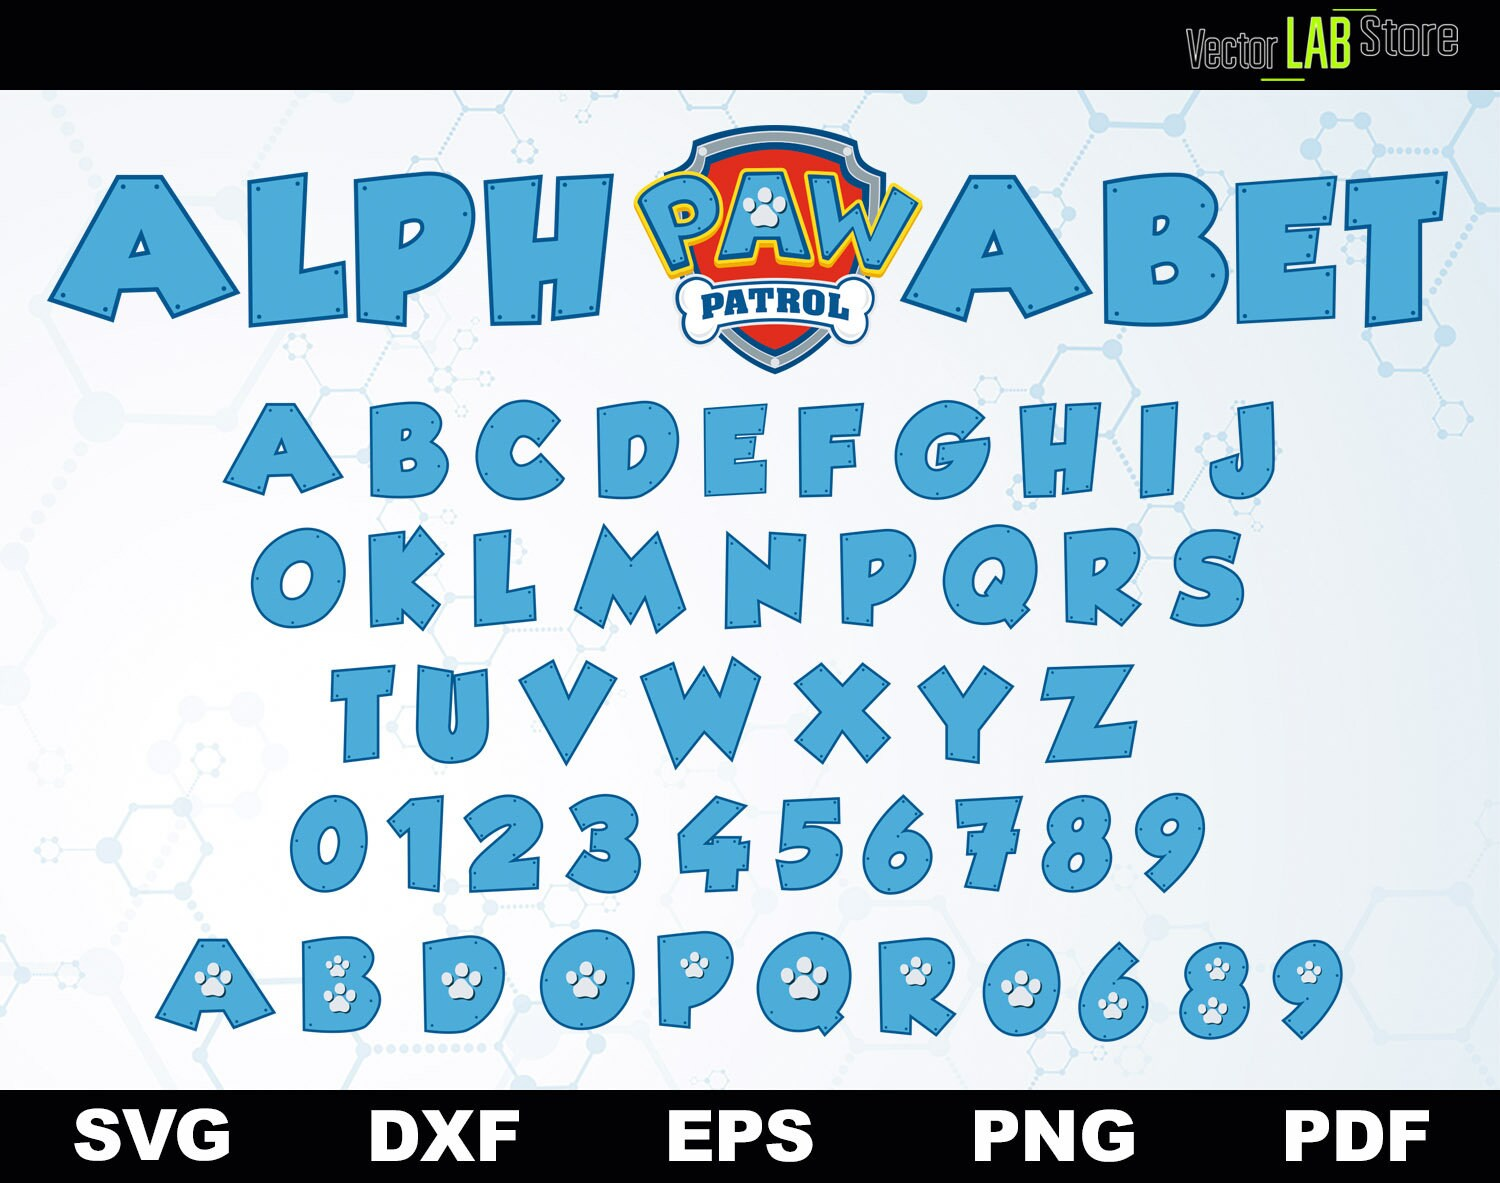 Paw Patrol Alphabet Vector Cutting Files Svg Dxf Eps